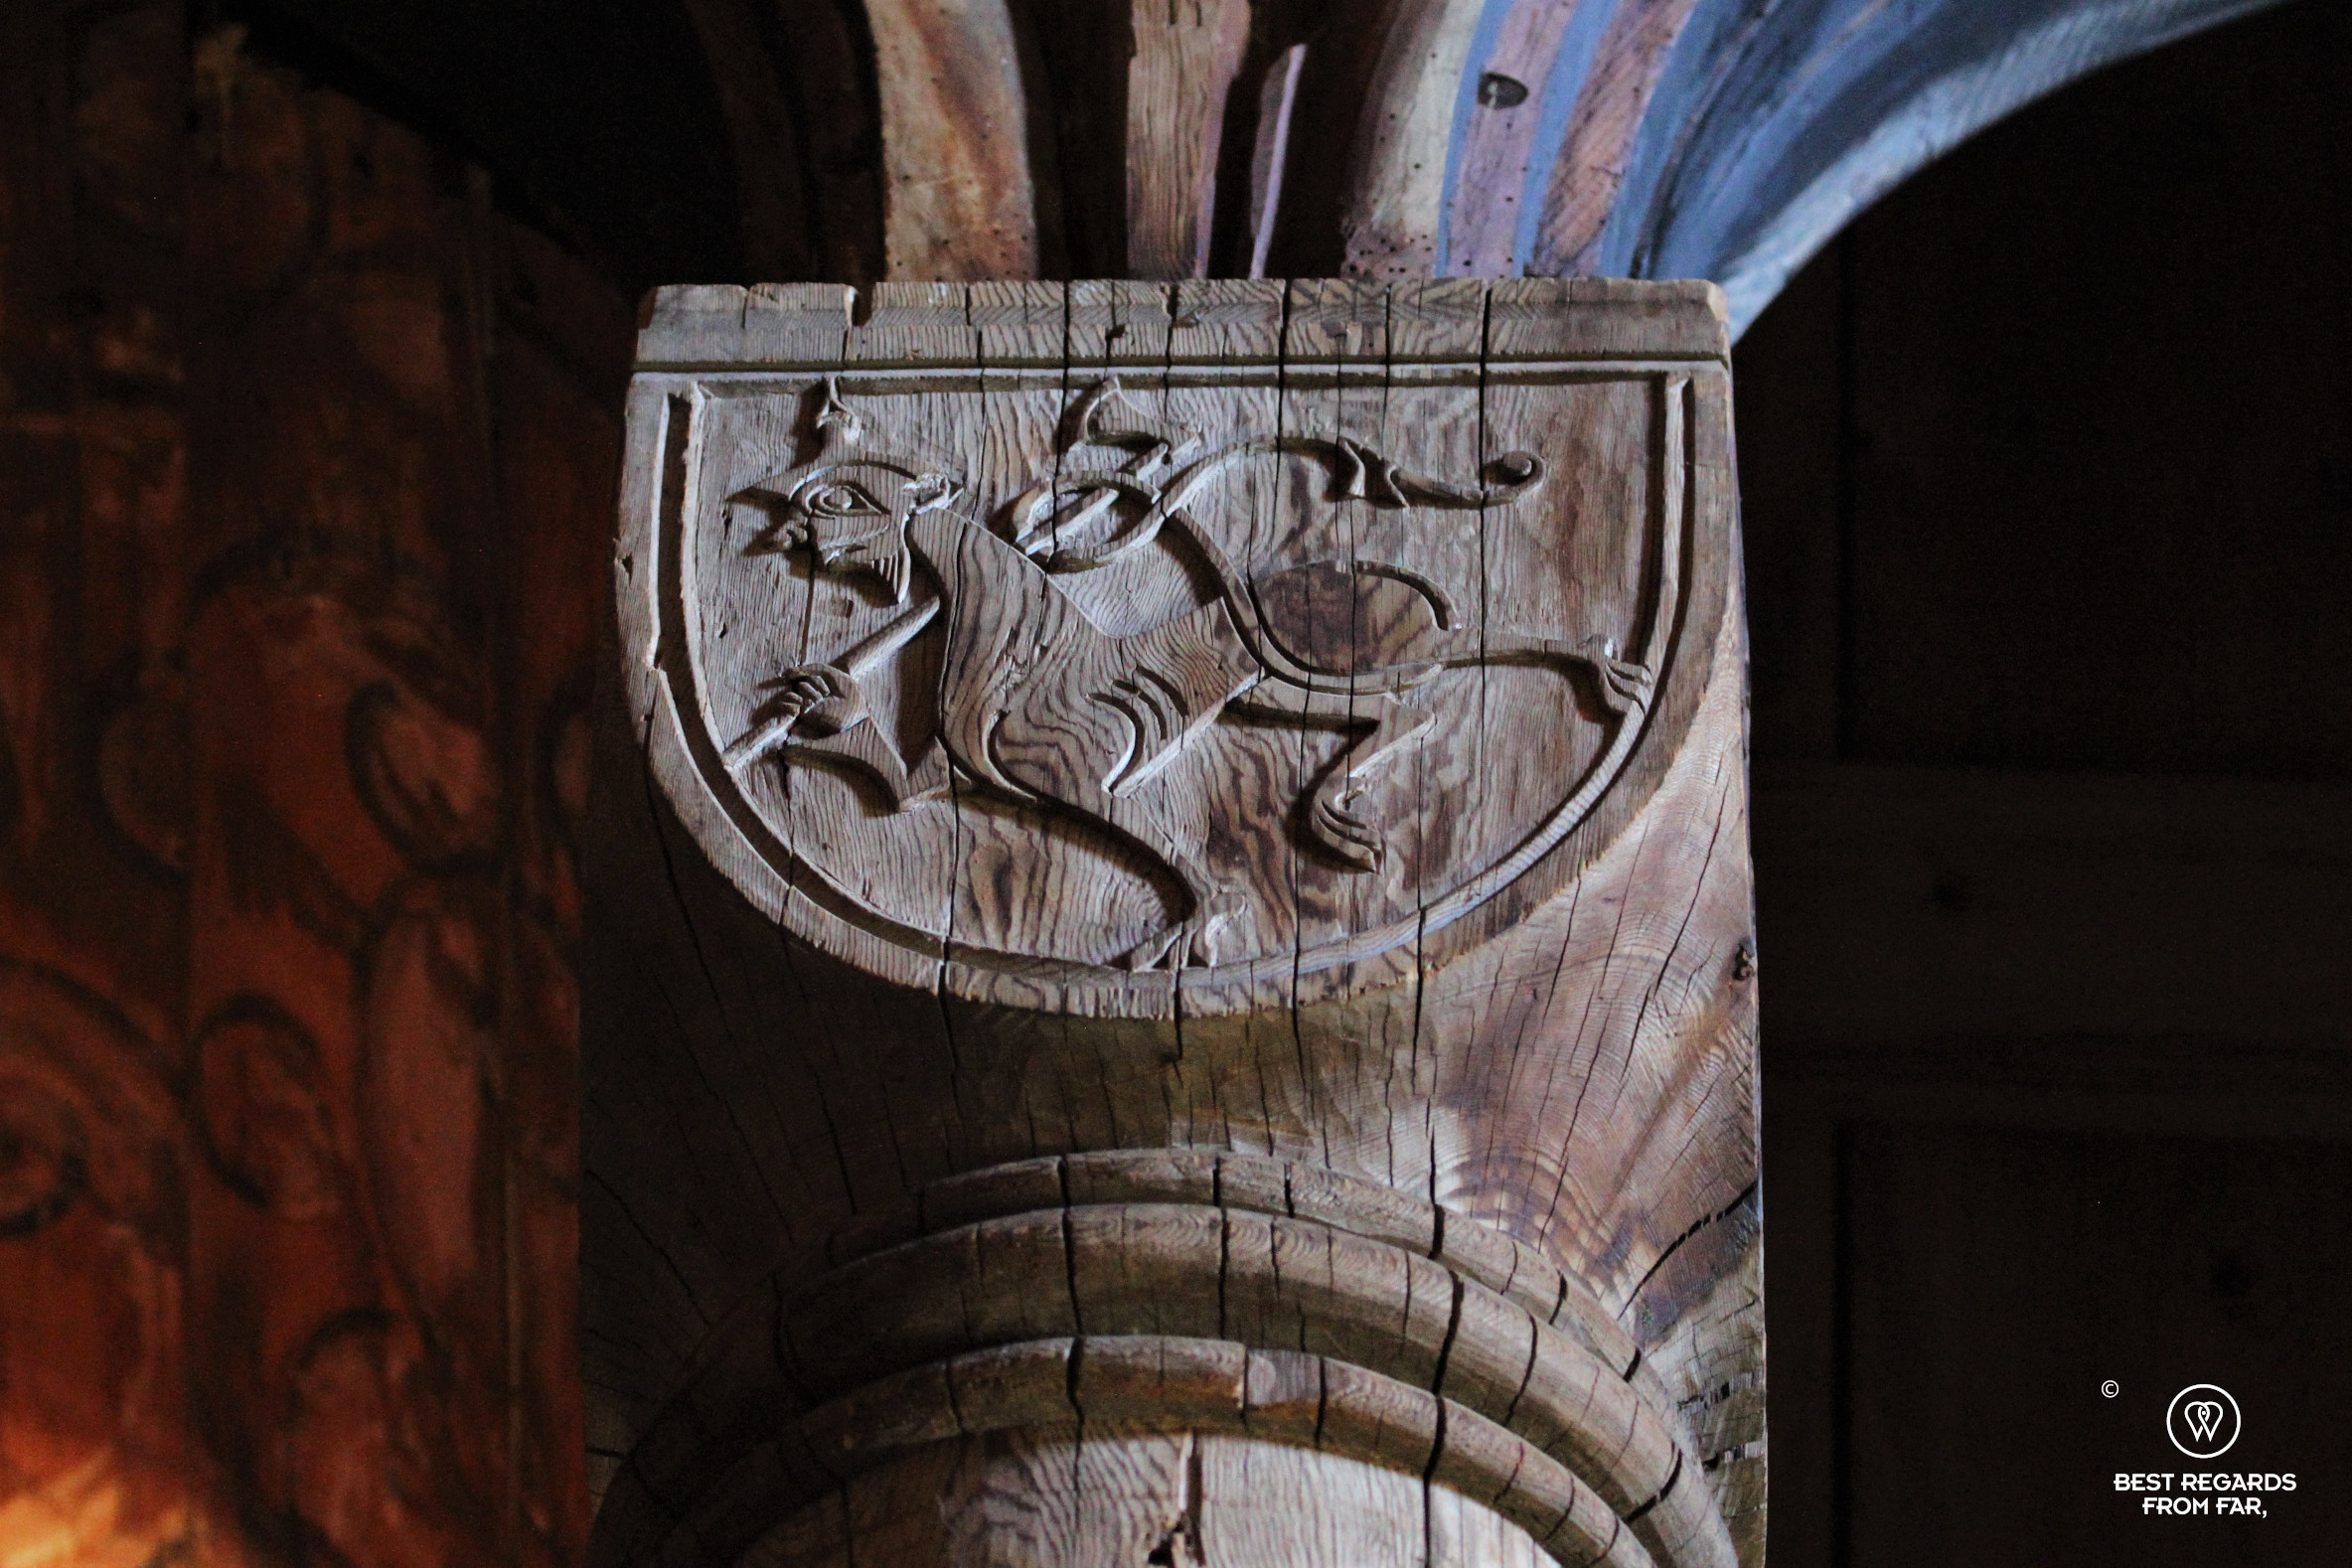 Delicate wood carvings inside Urnes Stave Church